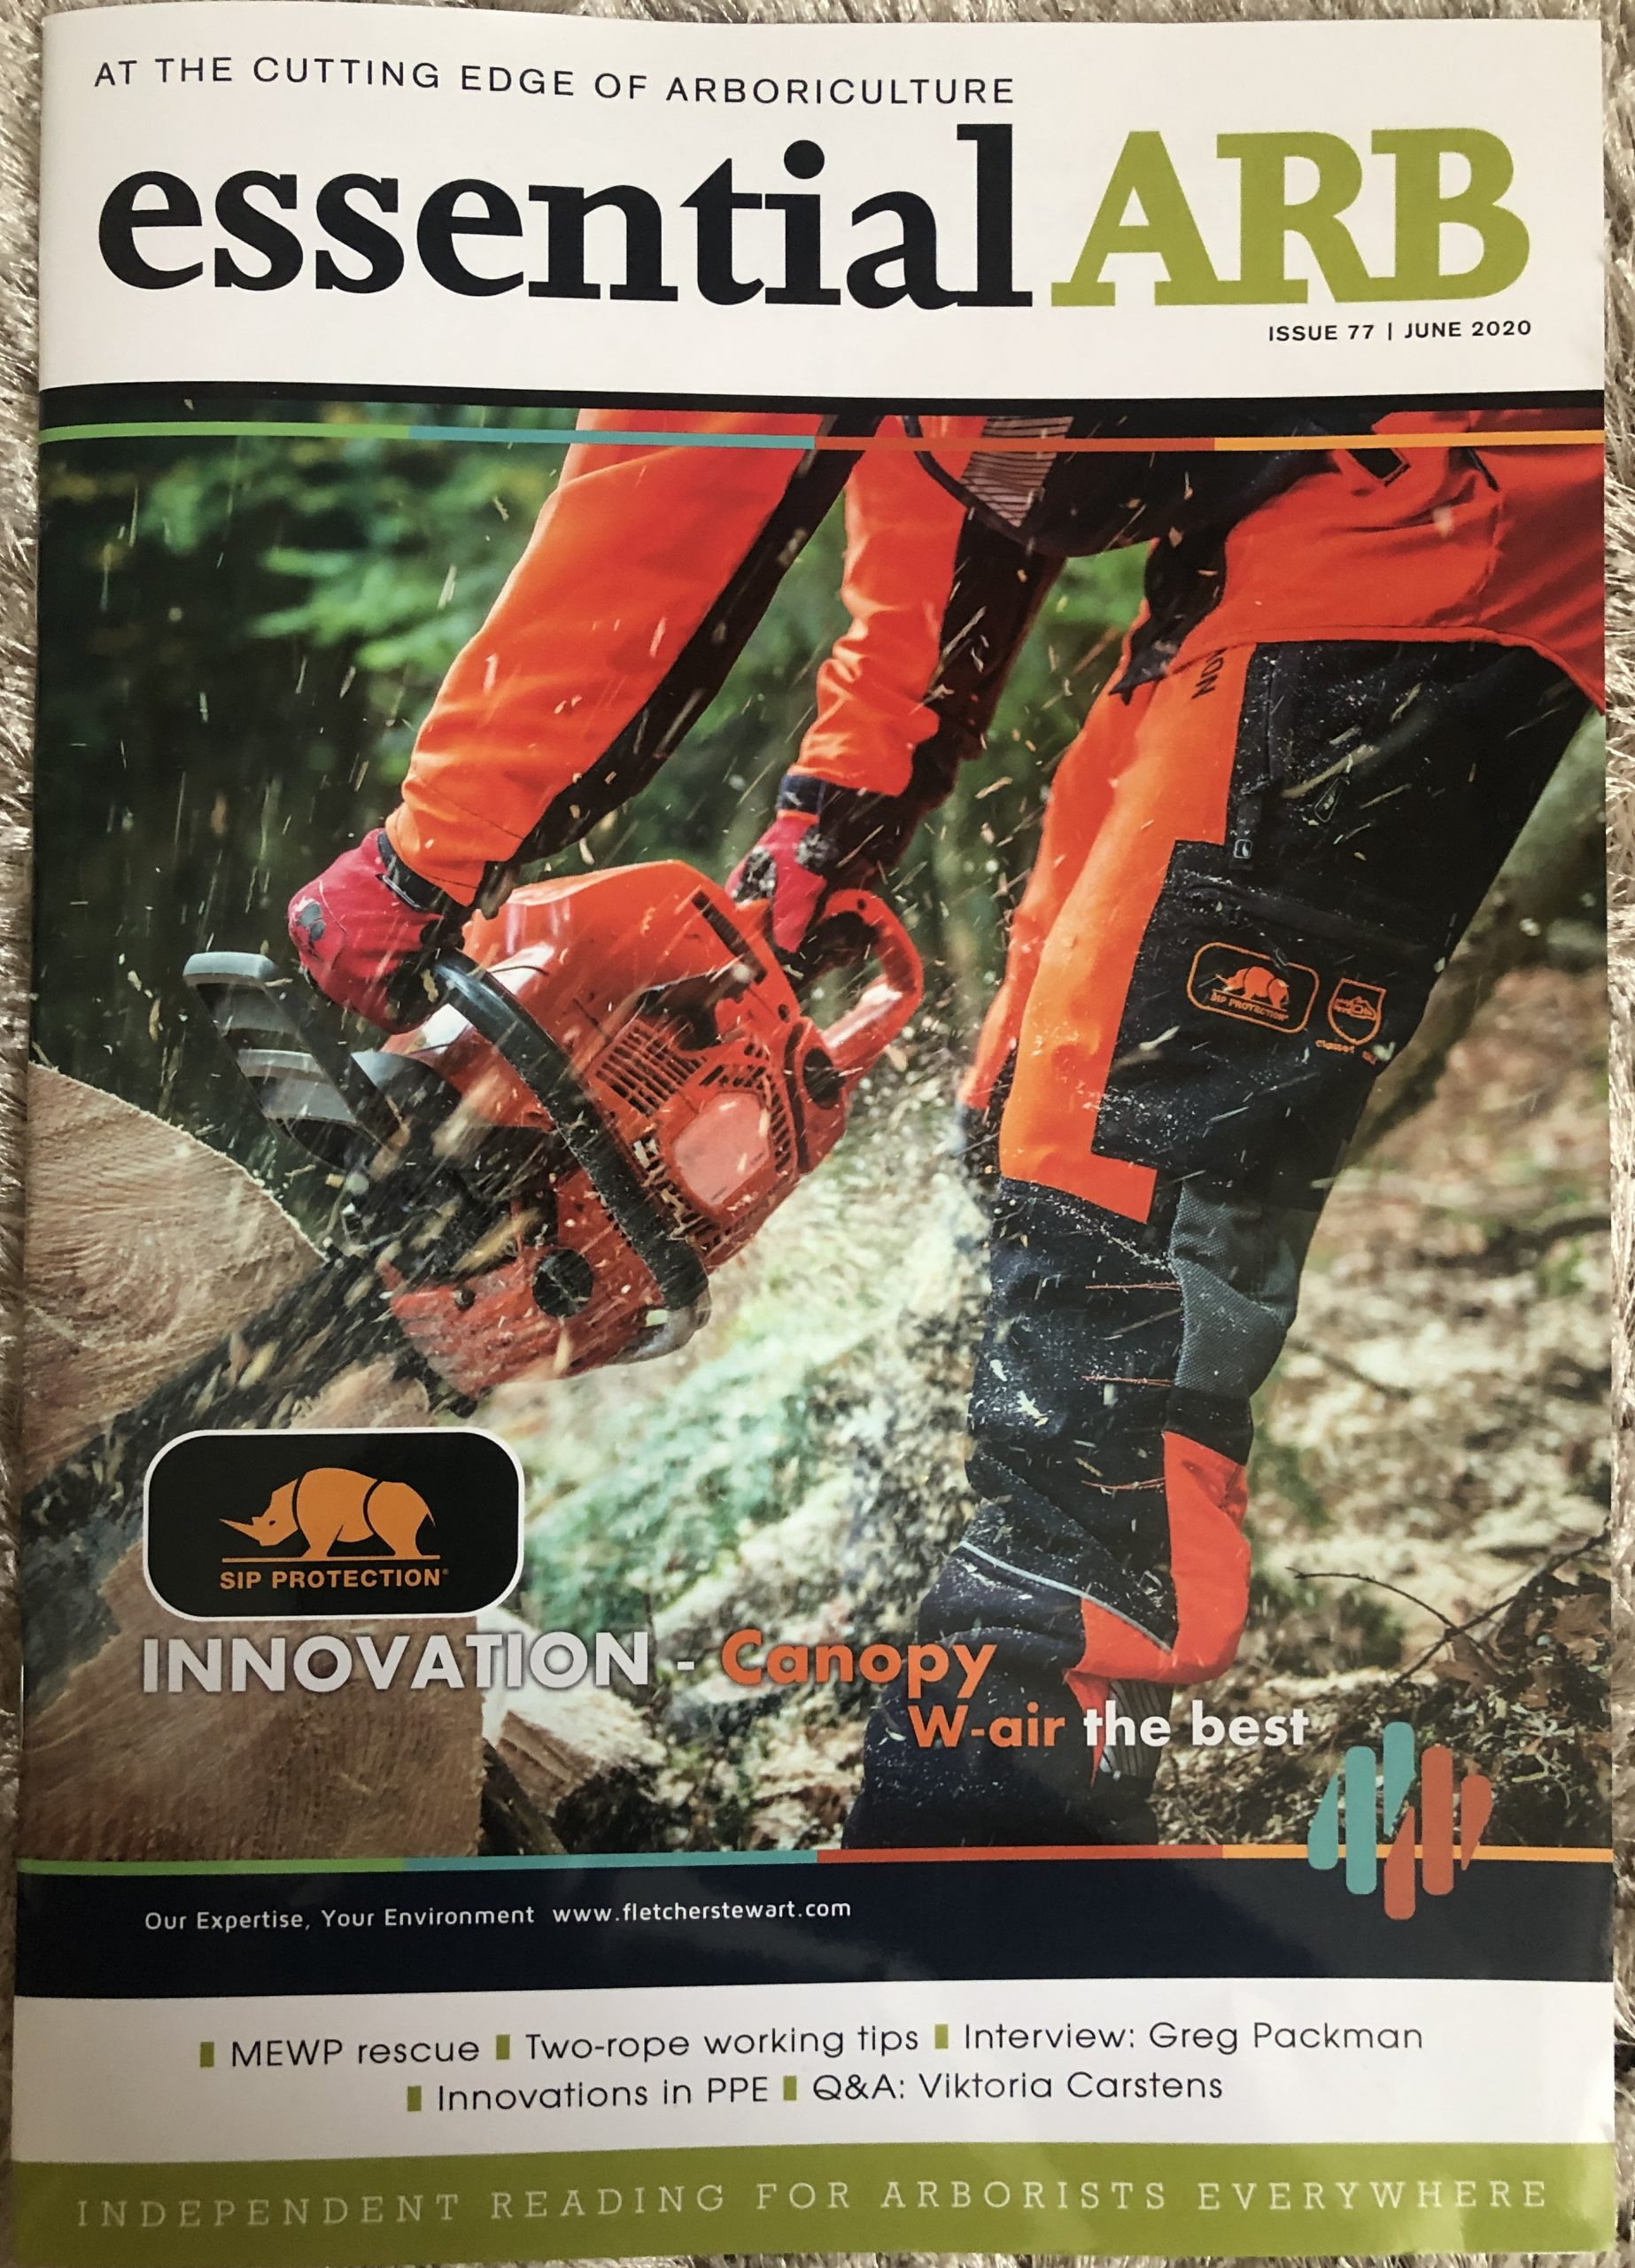 essentialARB – June 2020 issue, Frontier Sawmills and Bandit